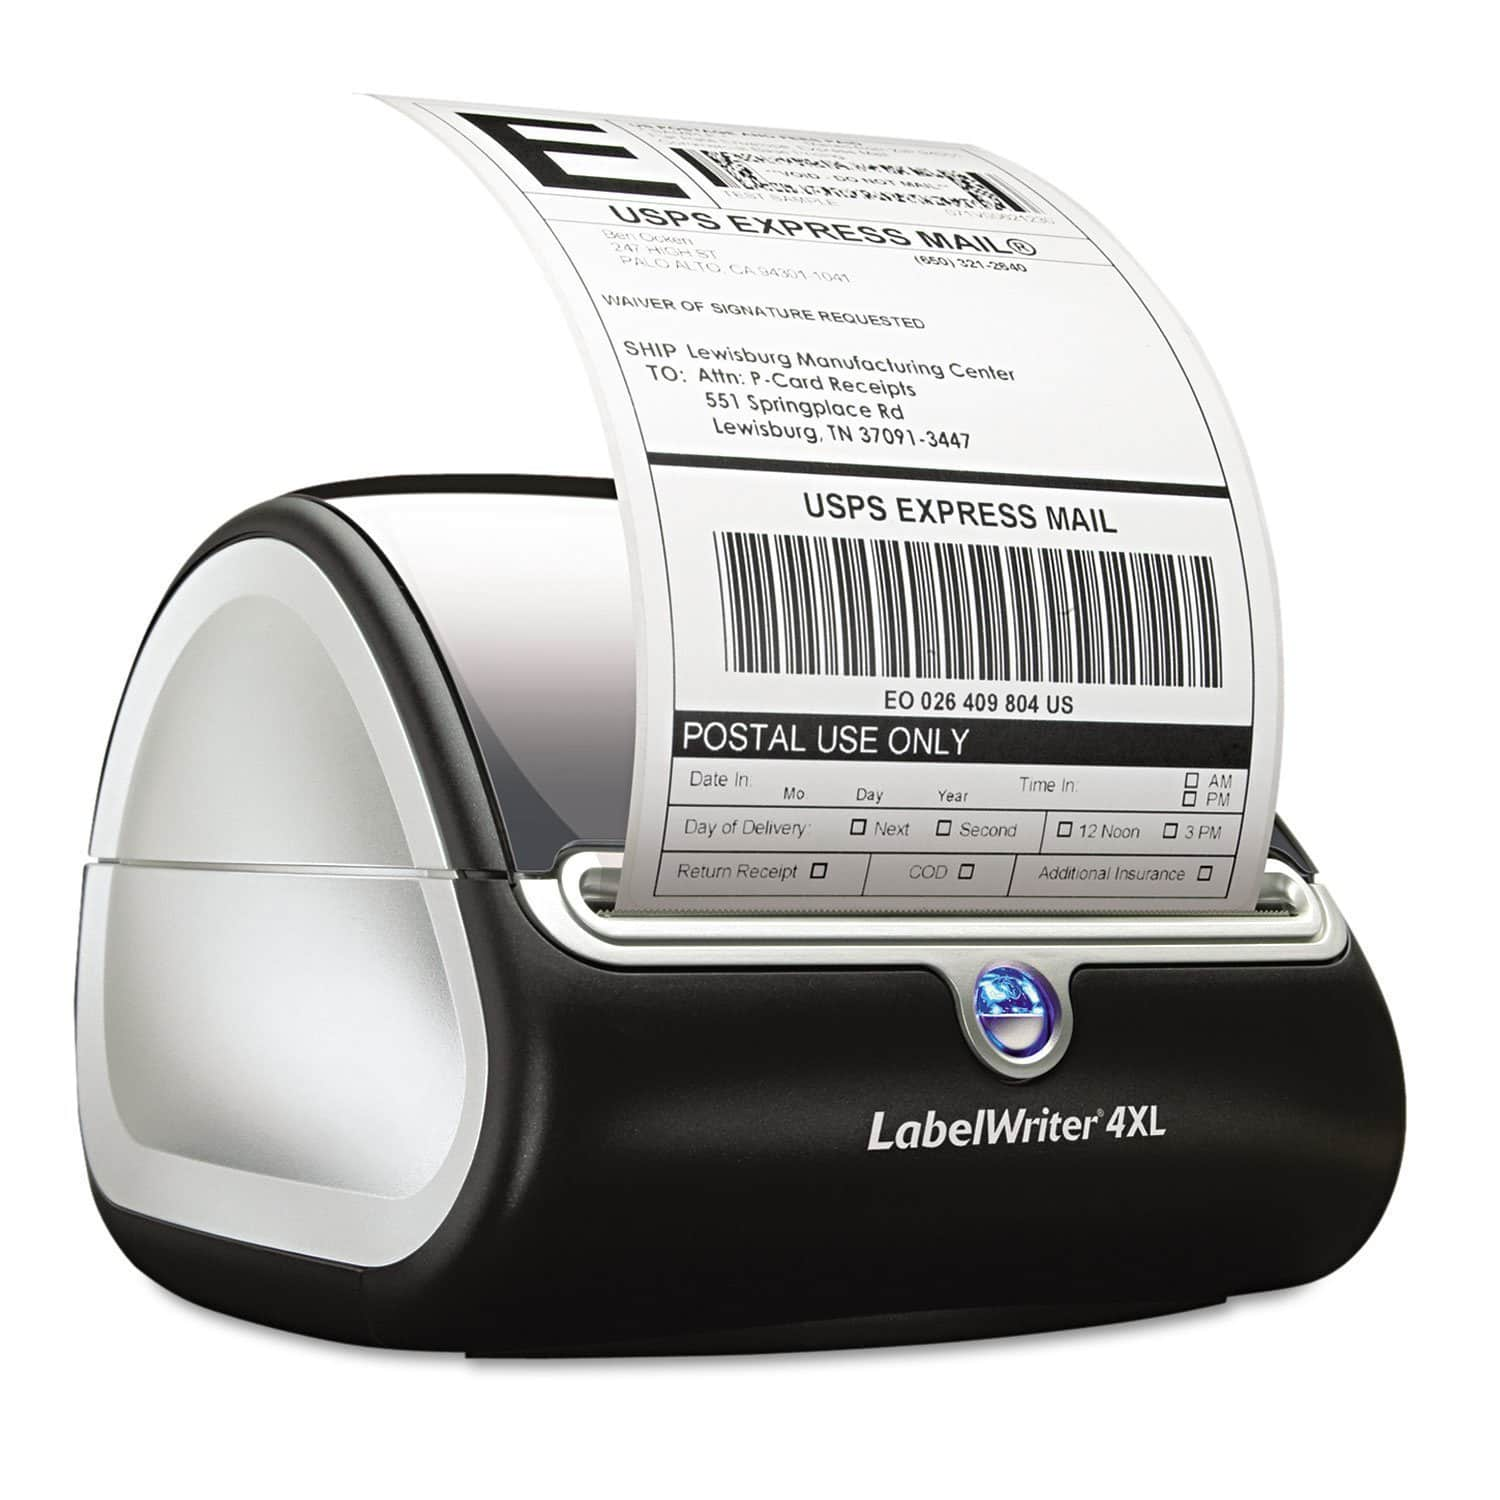 DYMO LabelWriter 4XL Thermal Label Printer $100 plus Free Shipping for Prime Members